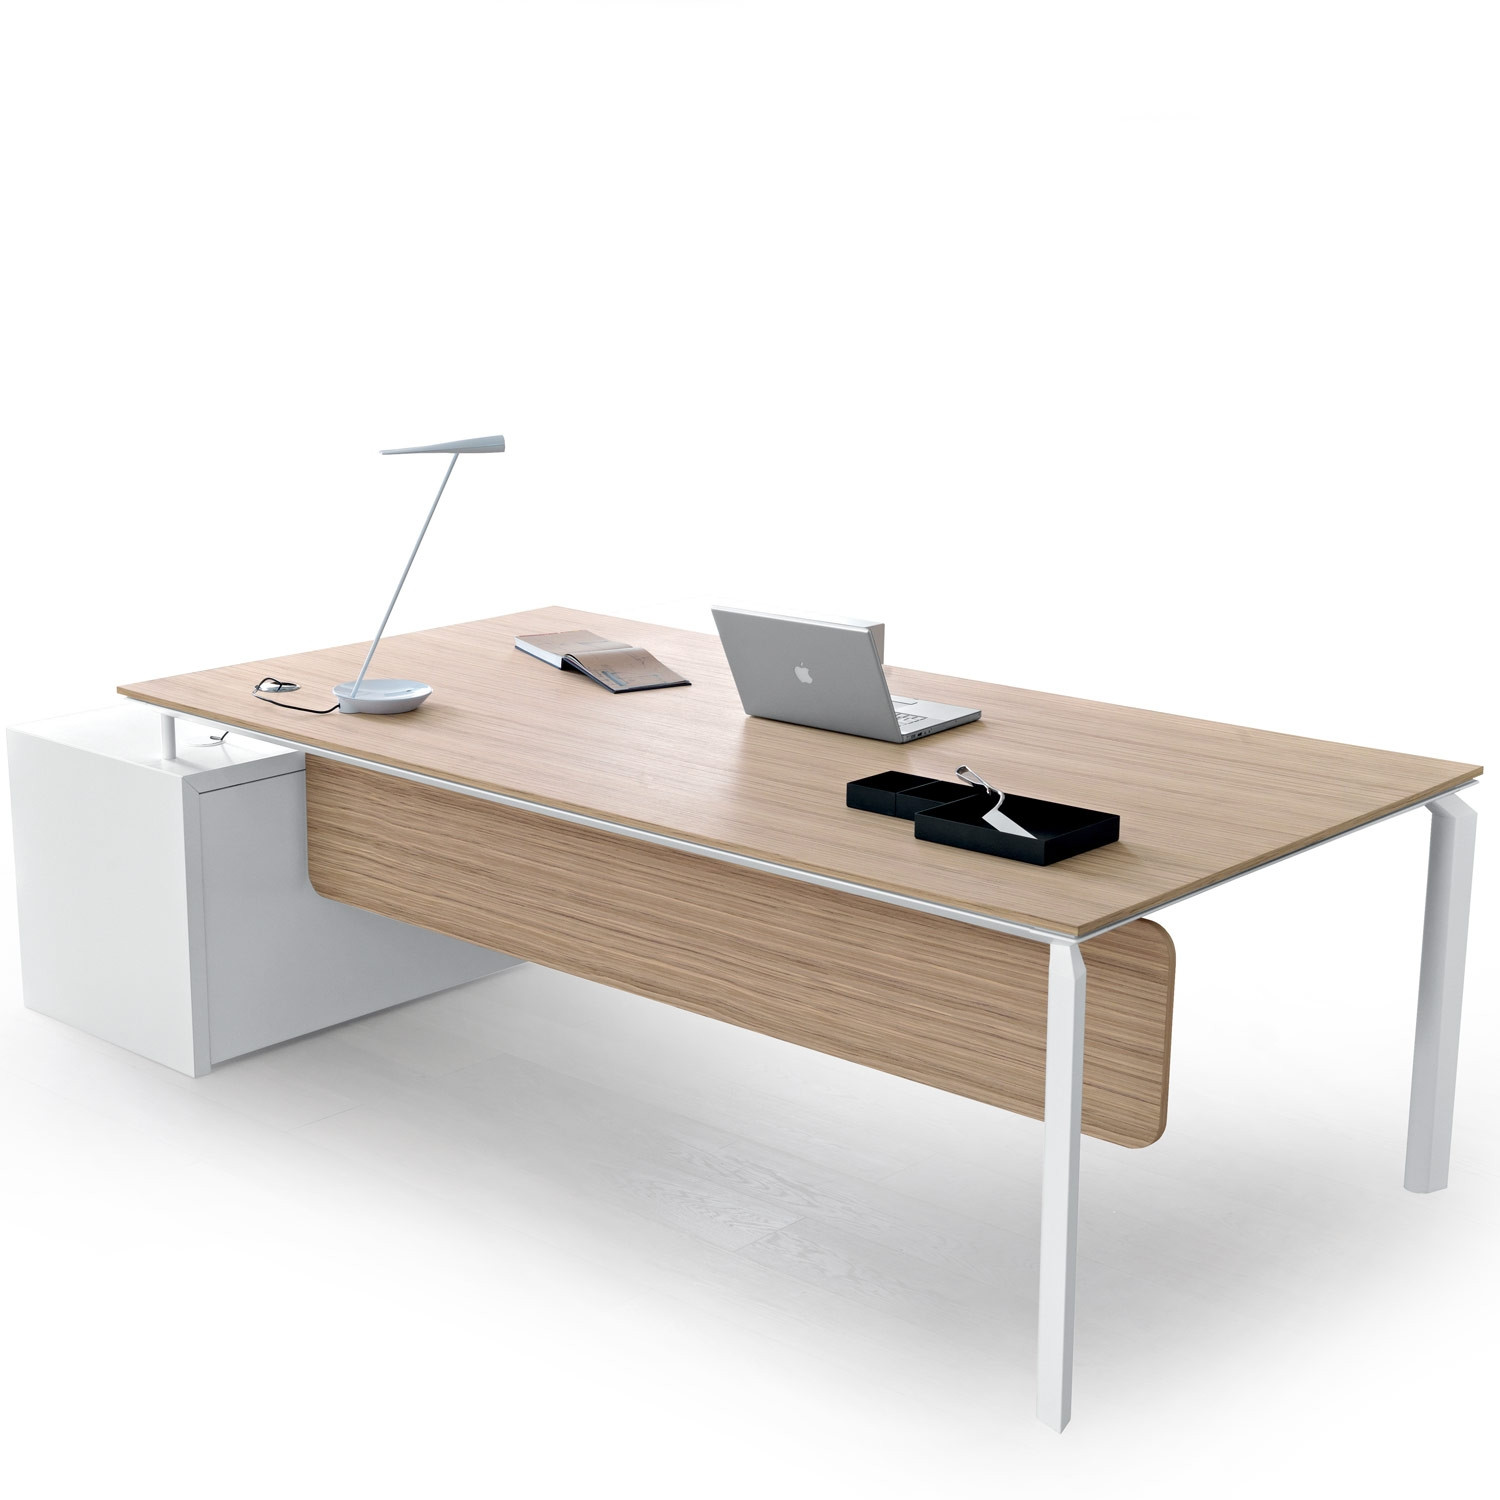 Anyware Executive Desk With Desk Storage Return